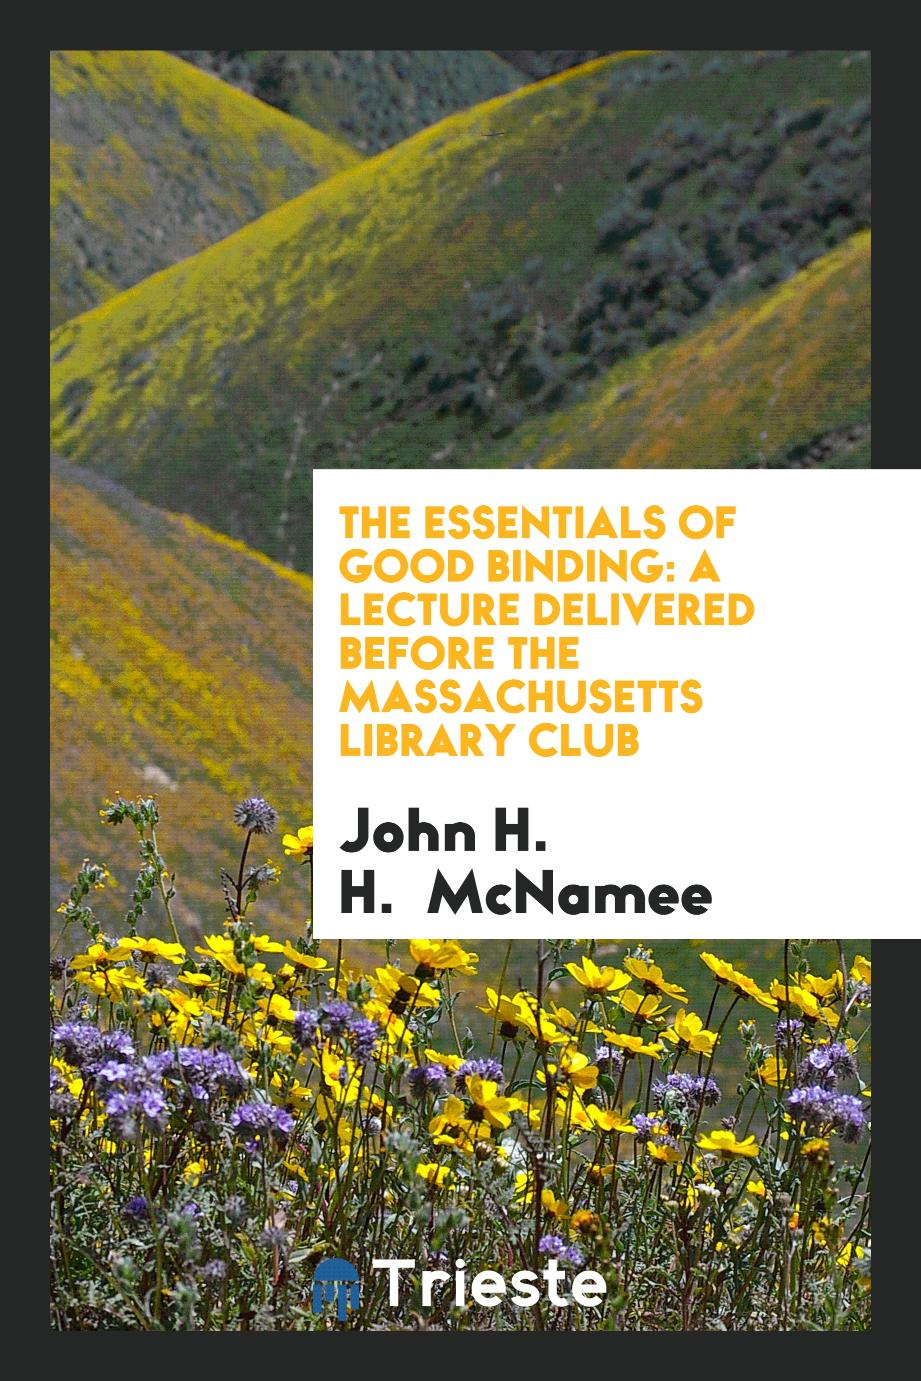 The Essentials of Good Binding: A Lecture Delivered Before the Massachusetts Library Club